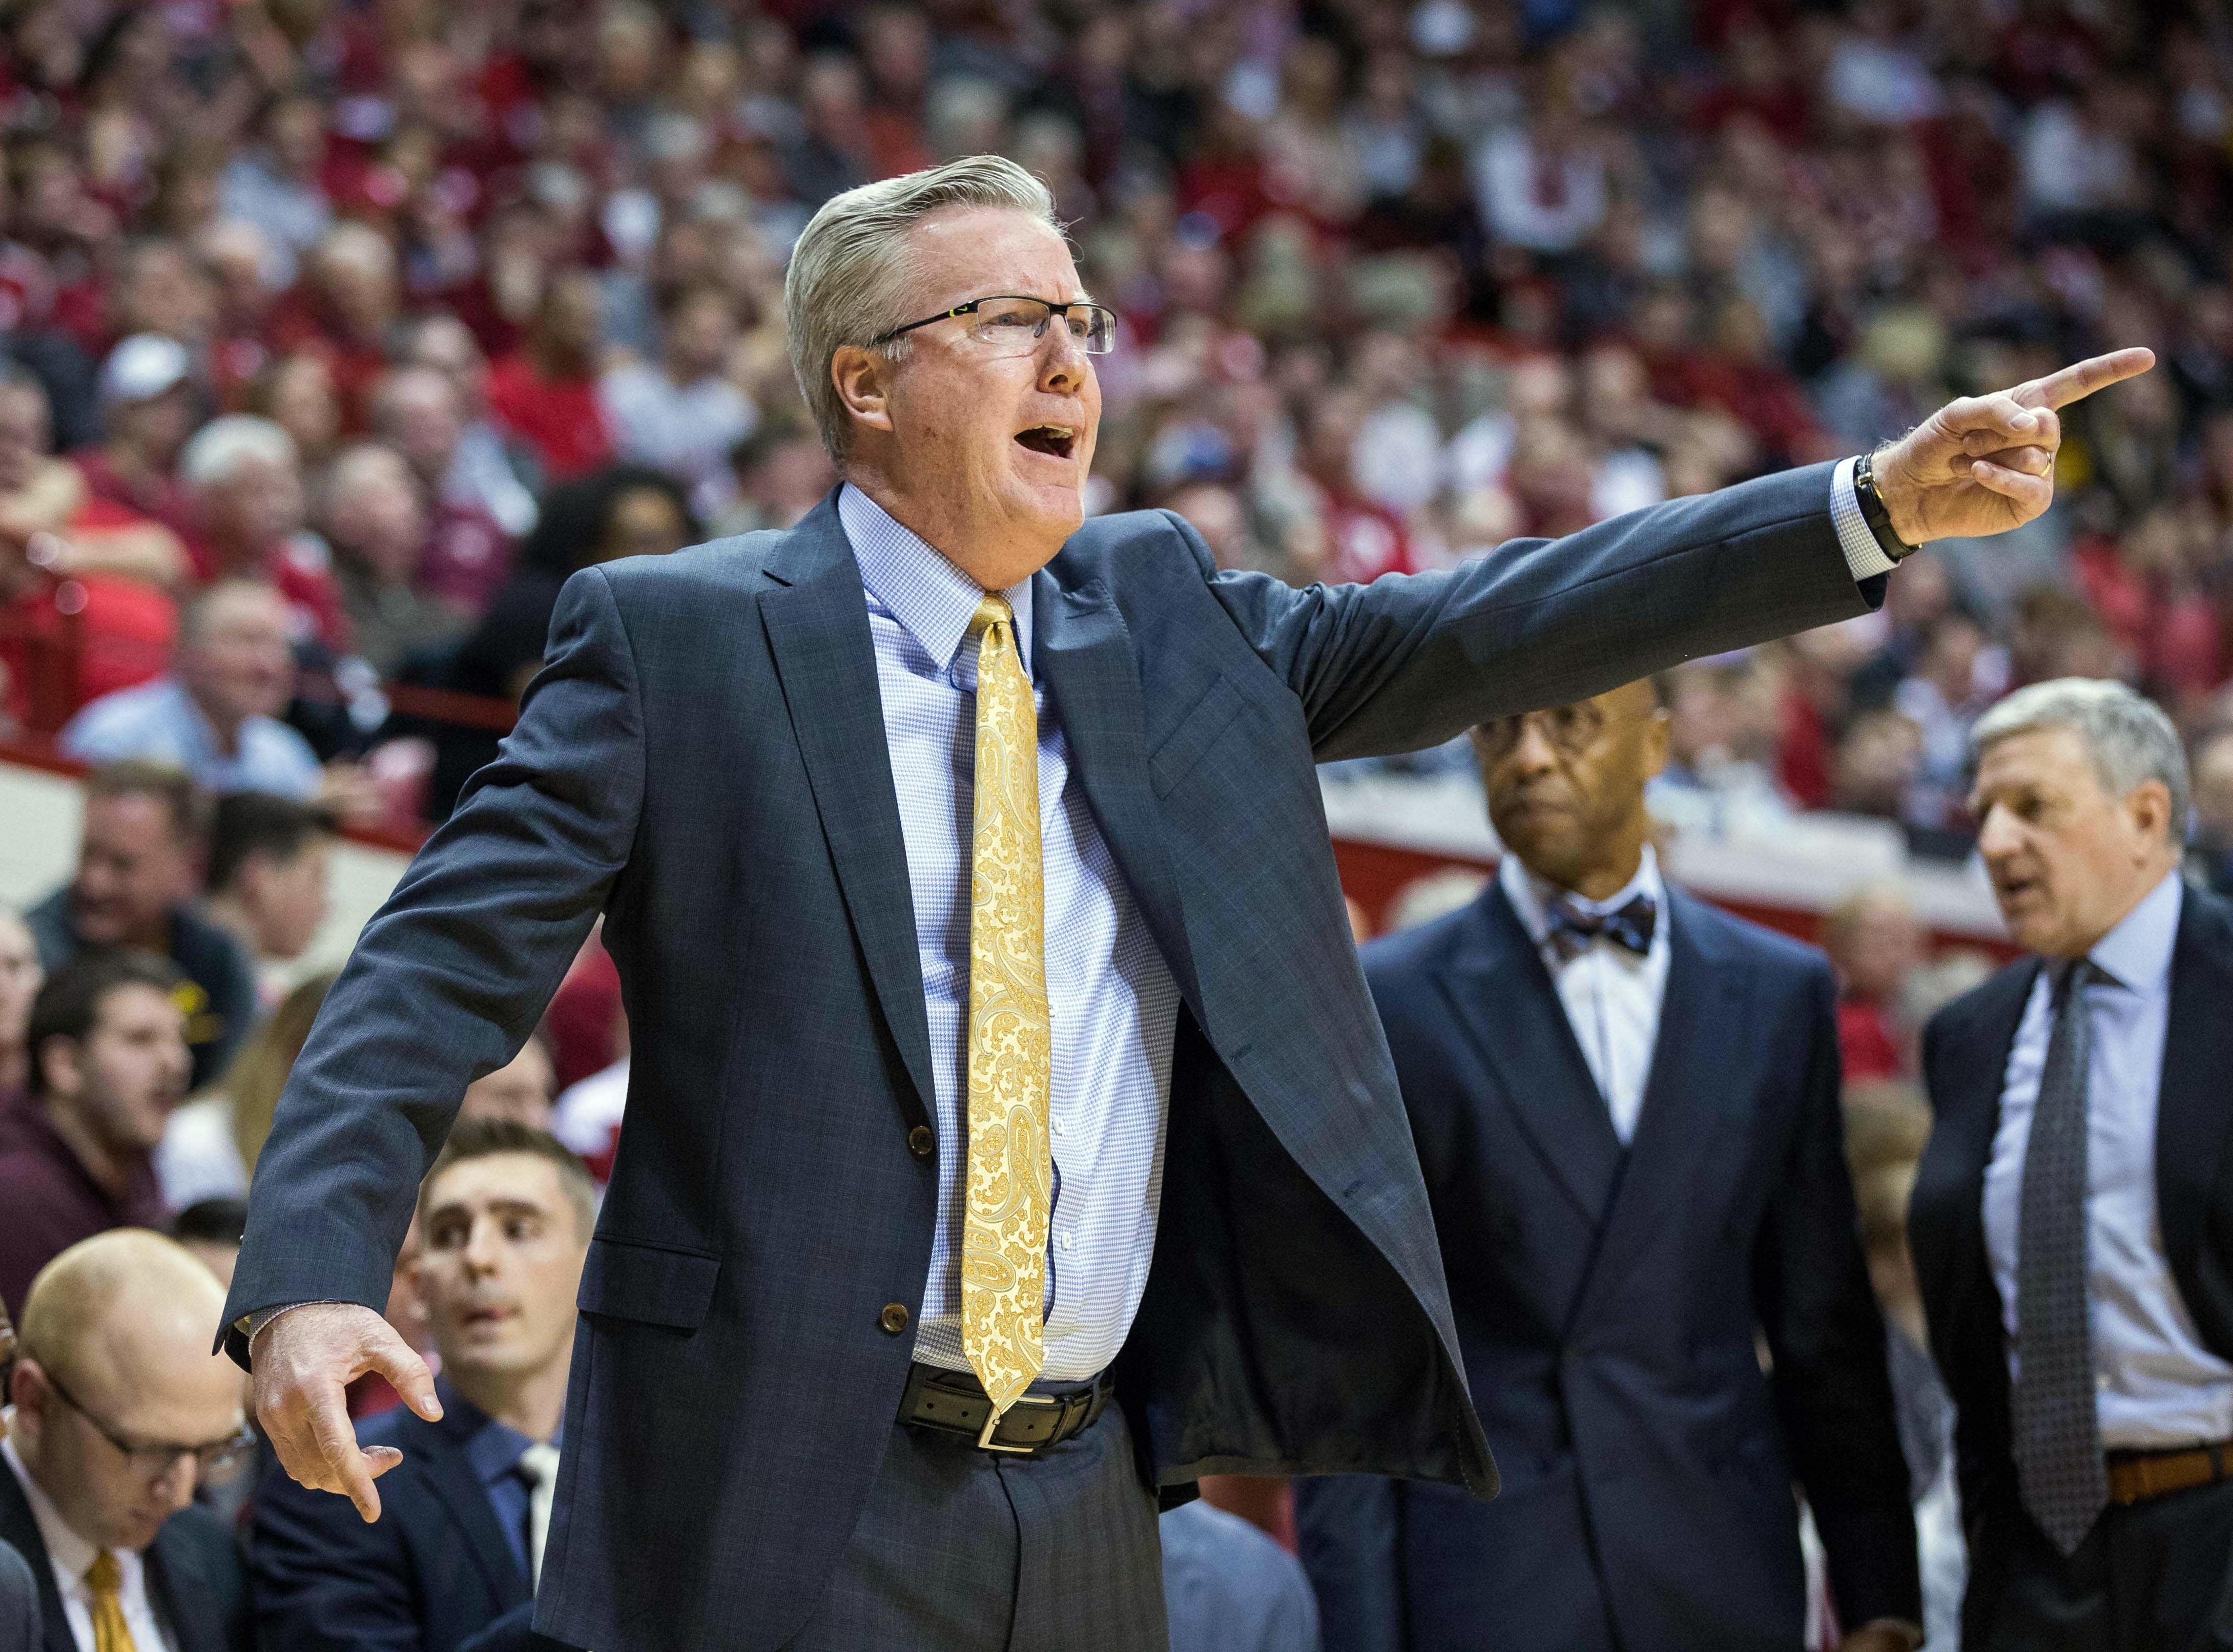 Iowa Hawkeyes head coach Fran McCaffery yells out a call in the first half against the Indiana Hoosiers at Assembly Hall. Mandatory Credit: Trevor Ruszkowski-USA TODAY Sports